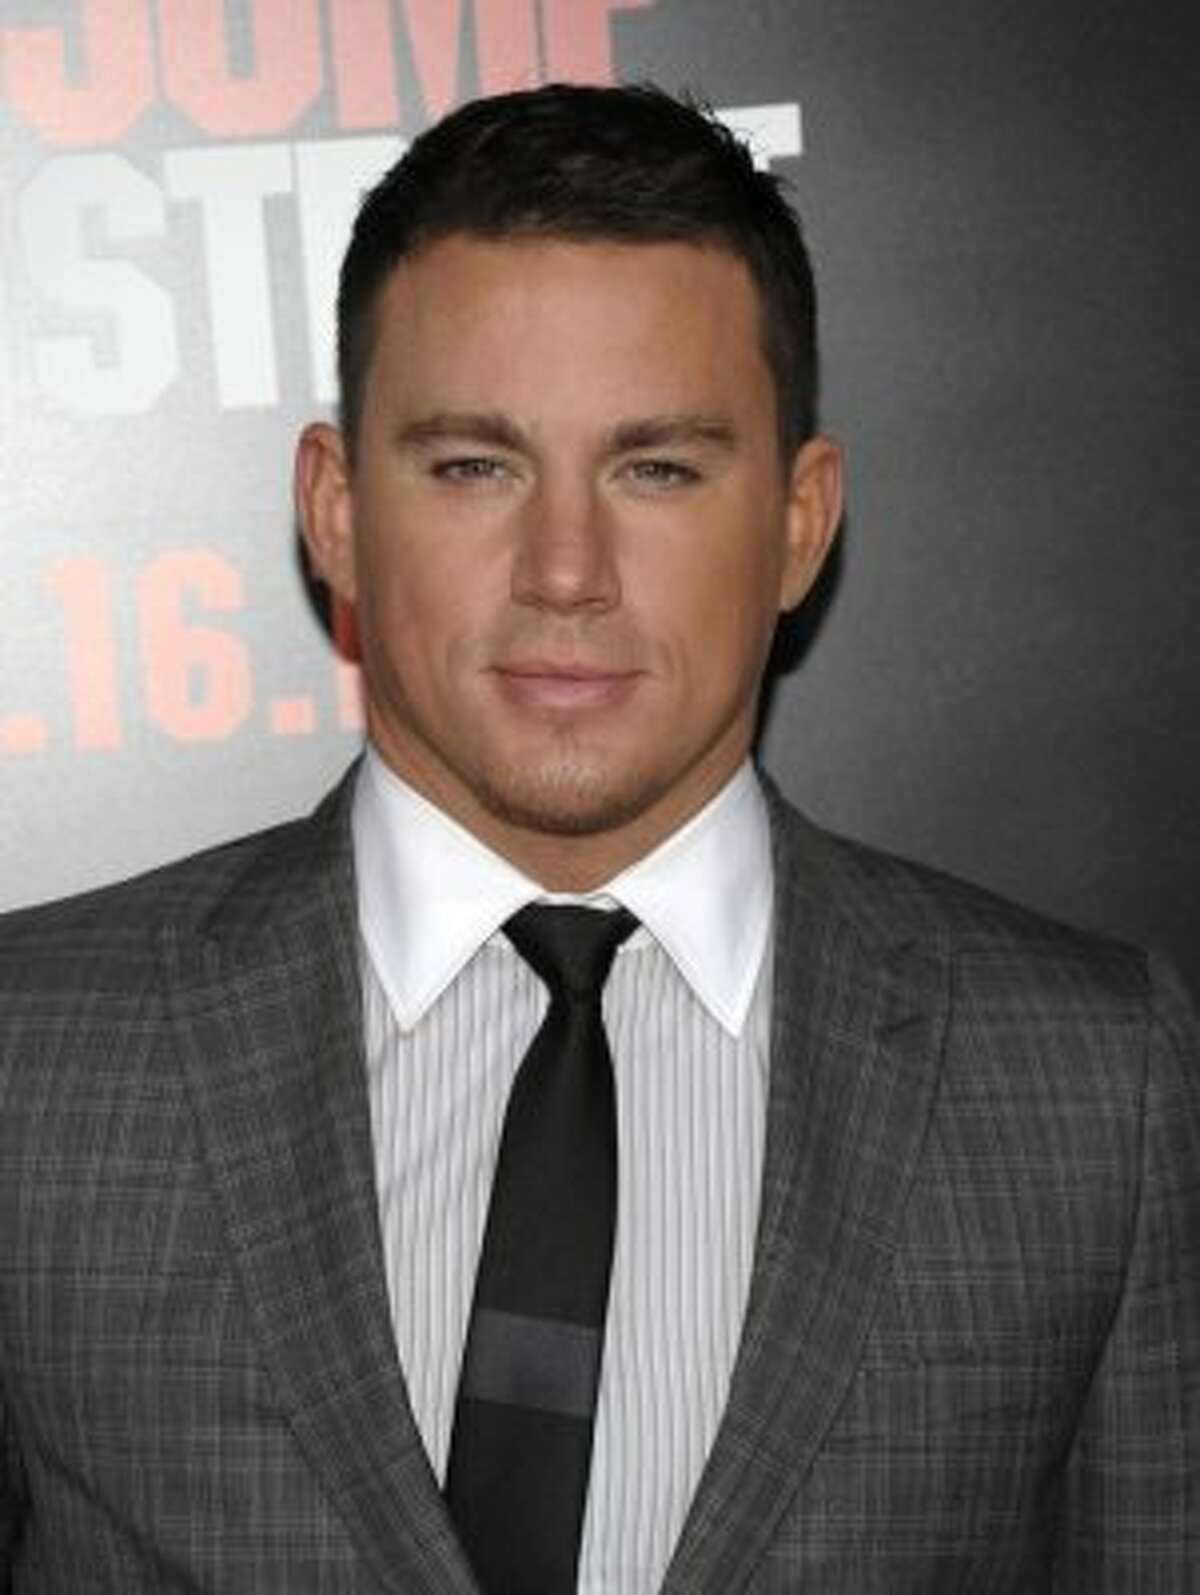 Channing Tatum - The stripper-turned-actor has been open about his past career and will star in a movie about mill strippers,